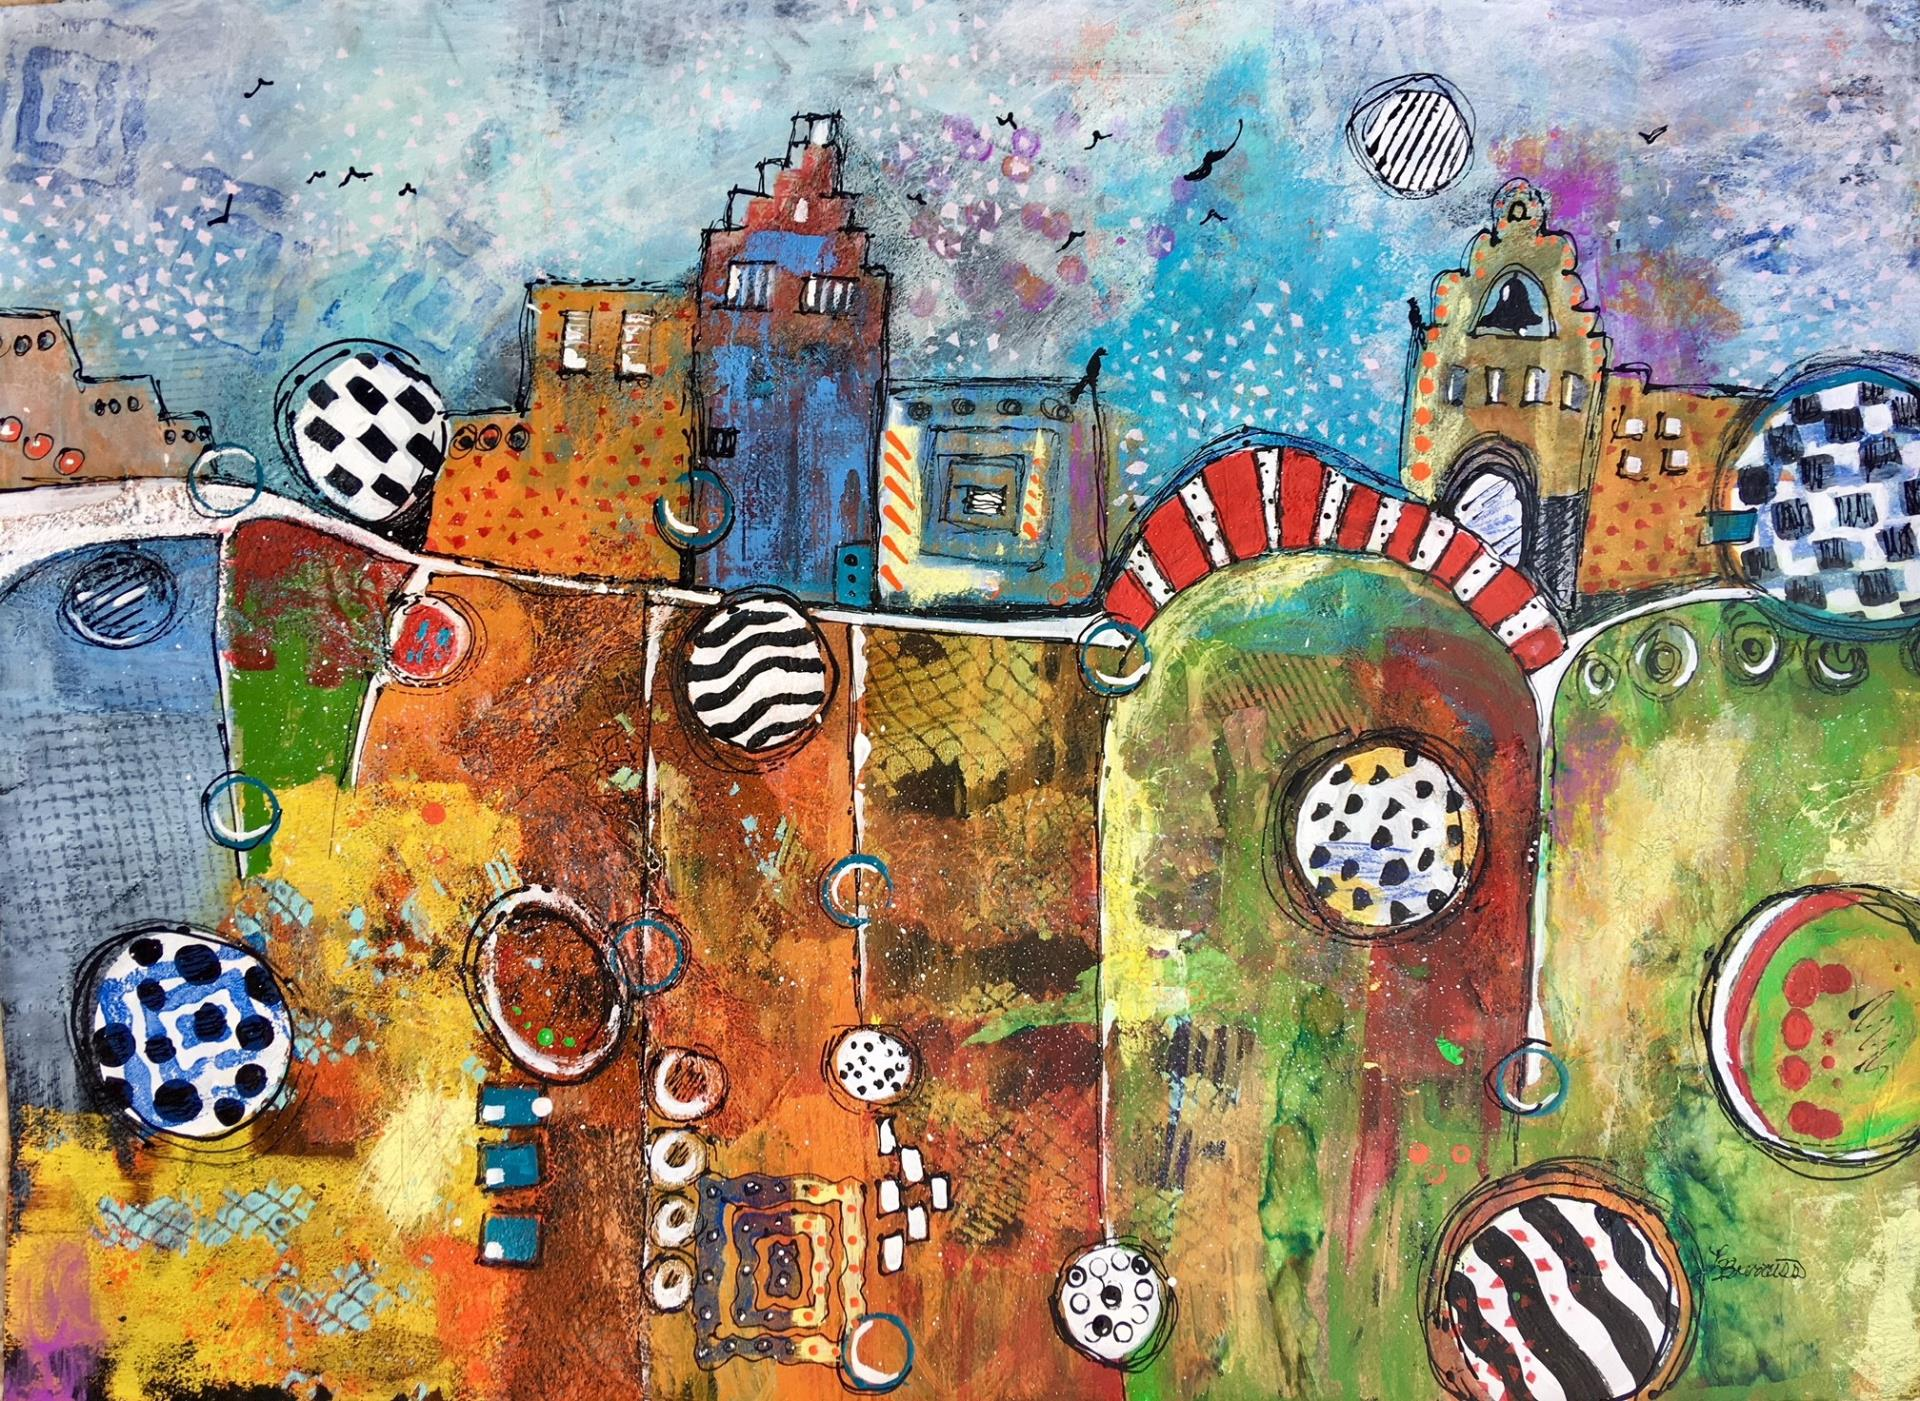 51a Lynda Burruss - Circleville - mixed media